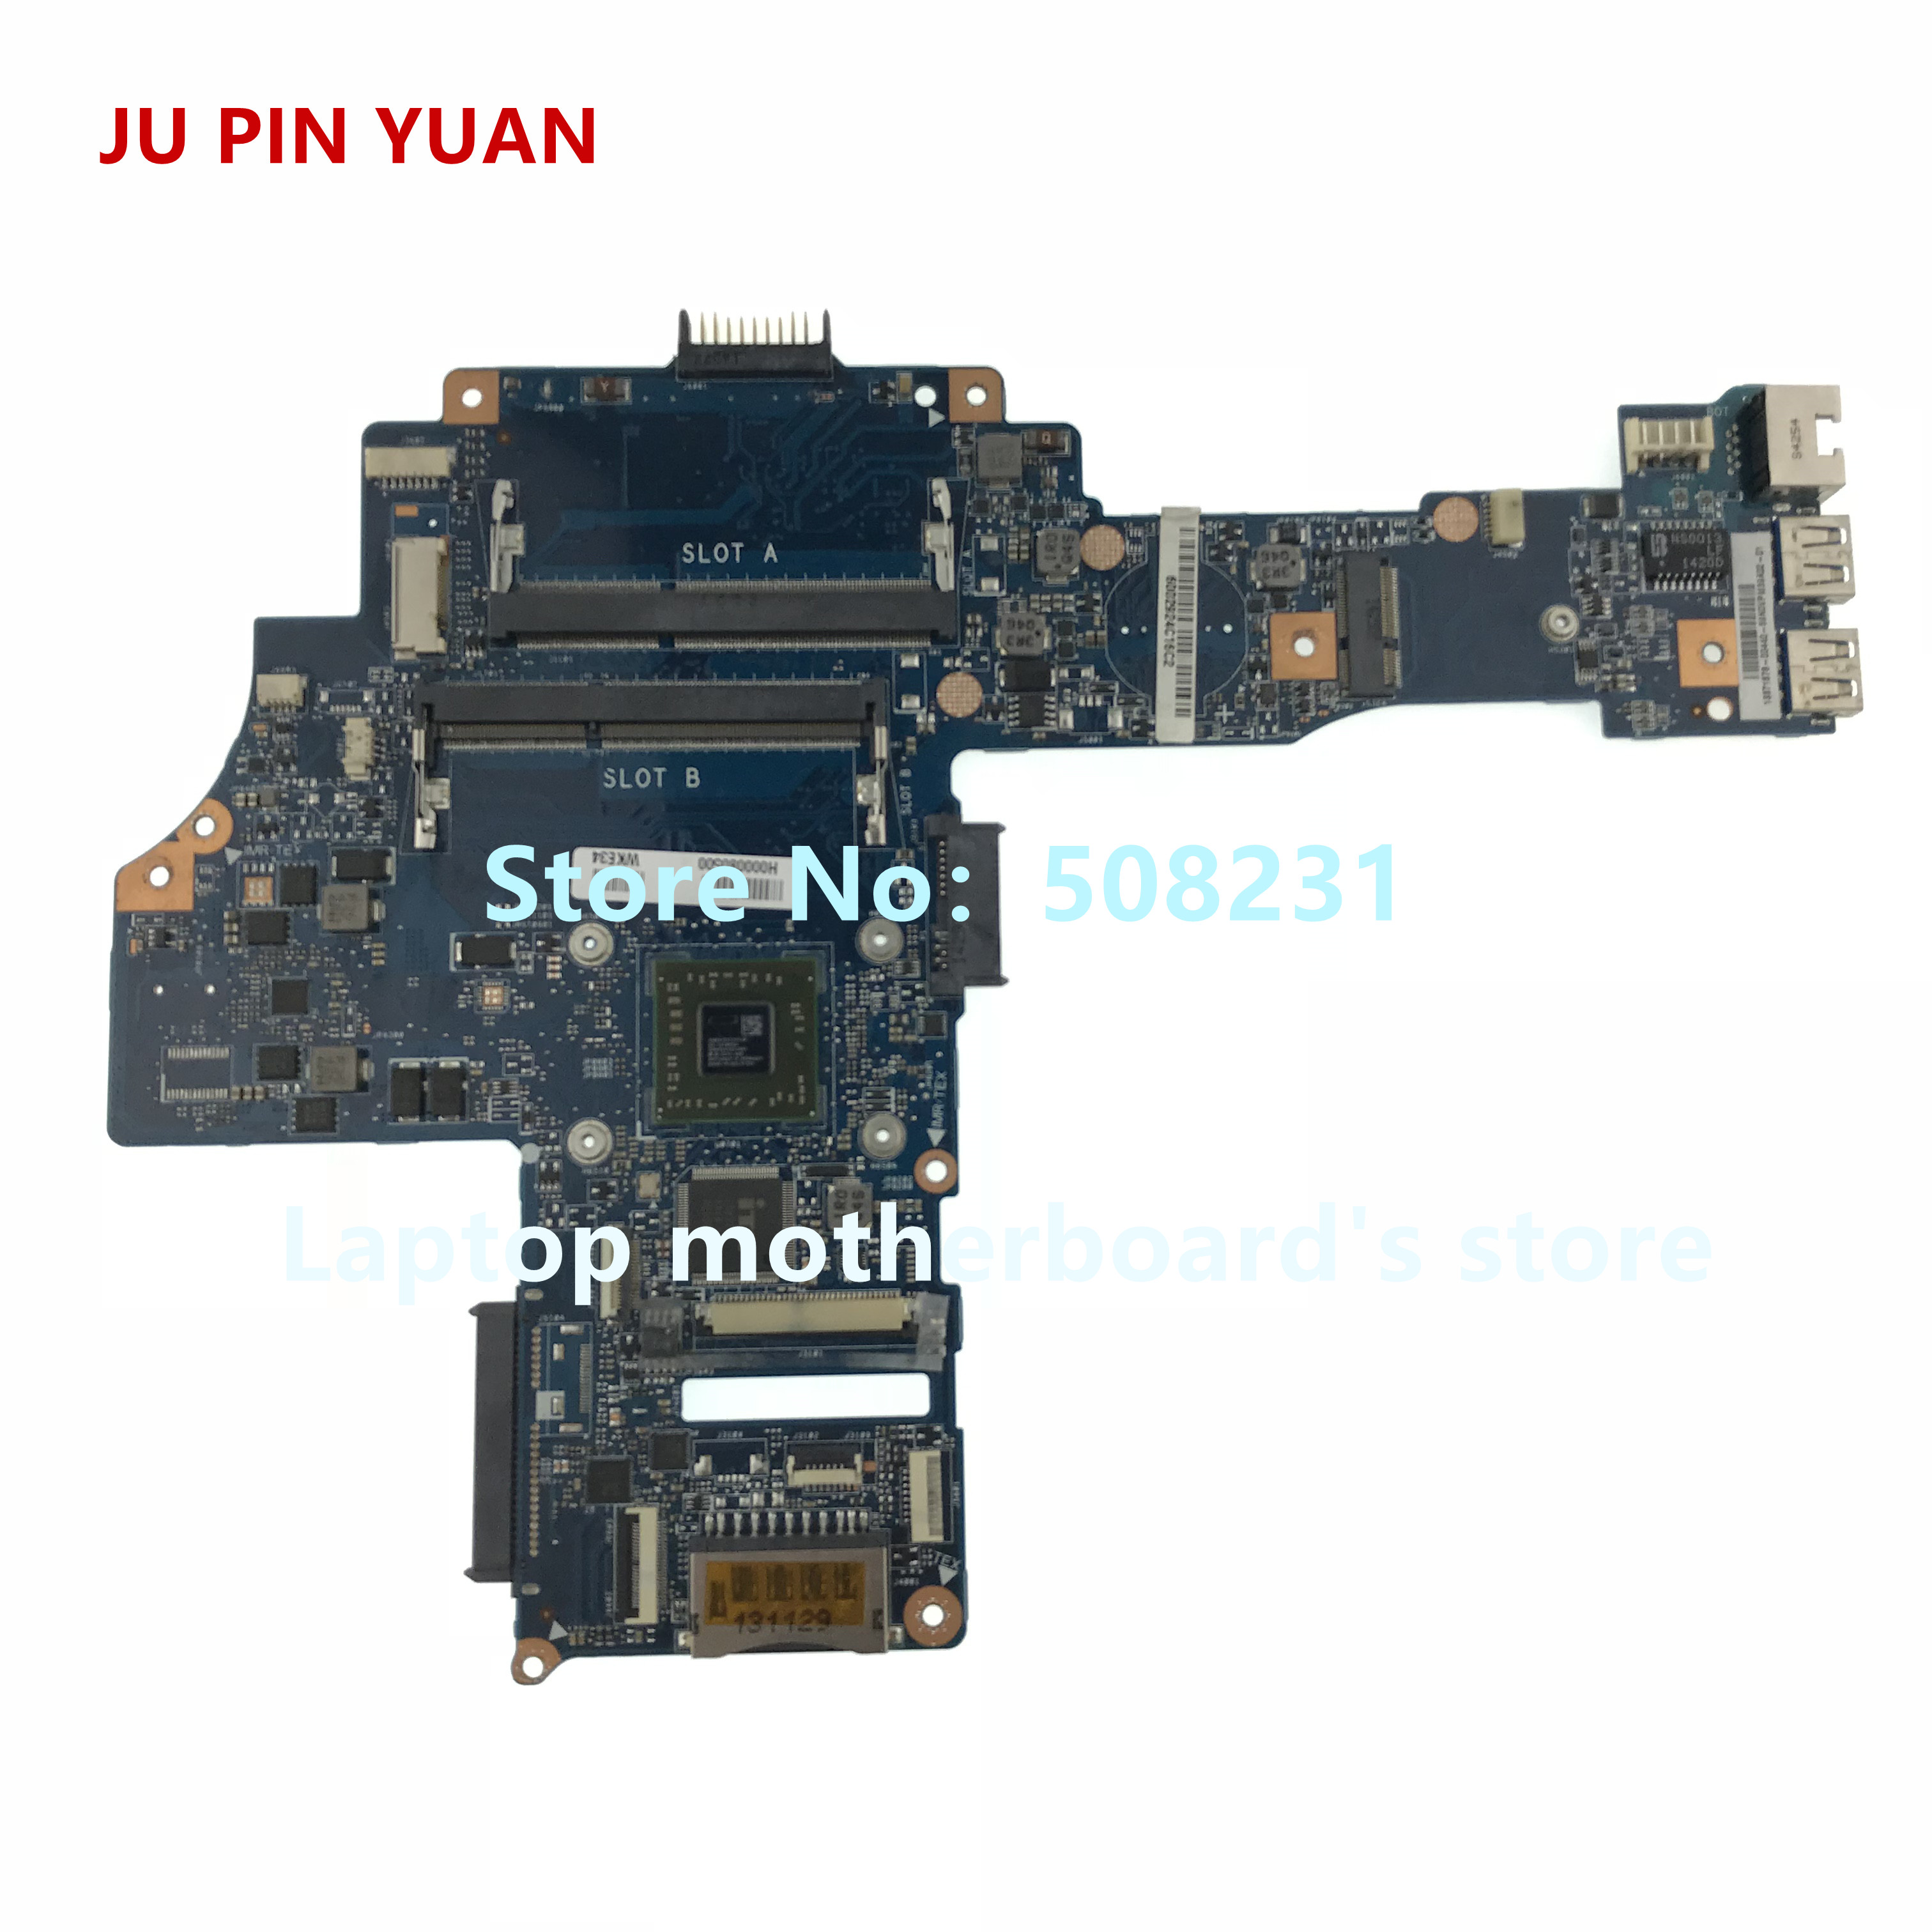 JU PIN YUAN H000080500 for Toshiba Satellite L40D-B L45D-B laptop motherboard CA10AN/AB with A8-6410 fully TestedJU PIN YUAN H000080500 for Toshiba Satellite L40D-B L45D-B laptop motherboard CA10AN/AB with A8-6410 fully Tested